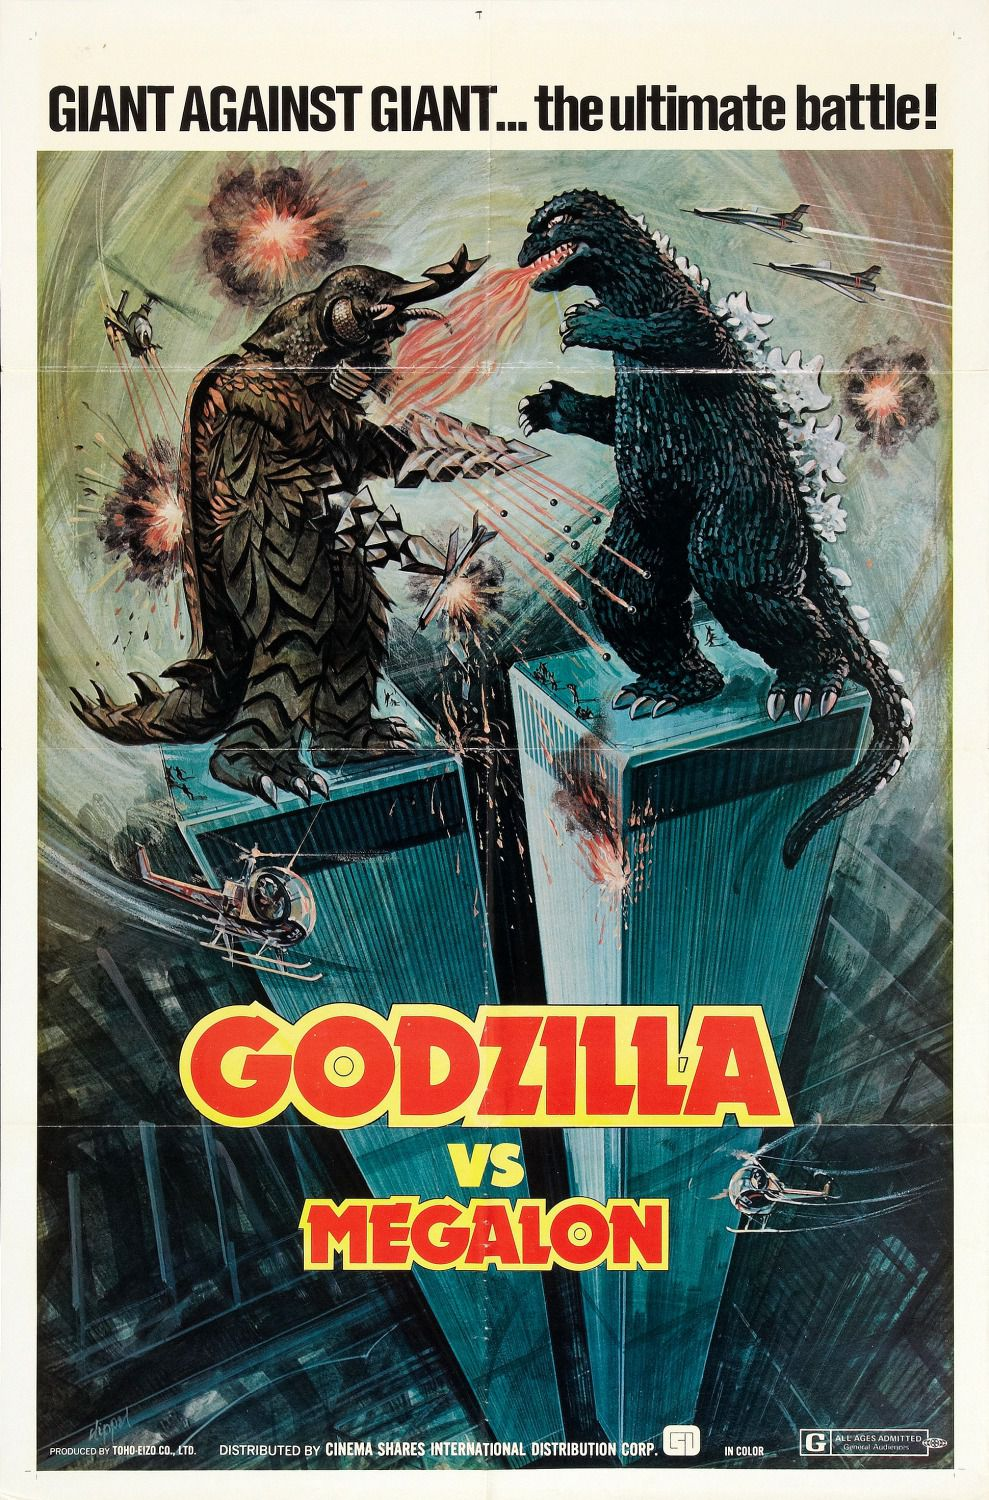 Godzilla vs Megalon - Gojira tai Megaro (1973) - Giant against giant... the ultimate battle - classic cult scifi film japanese monster poster